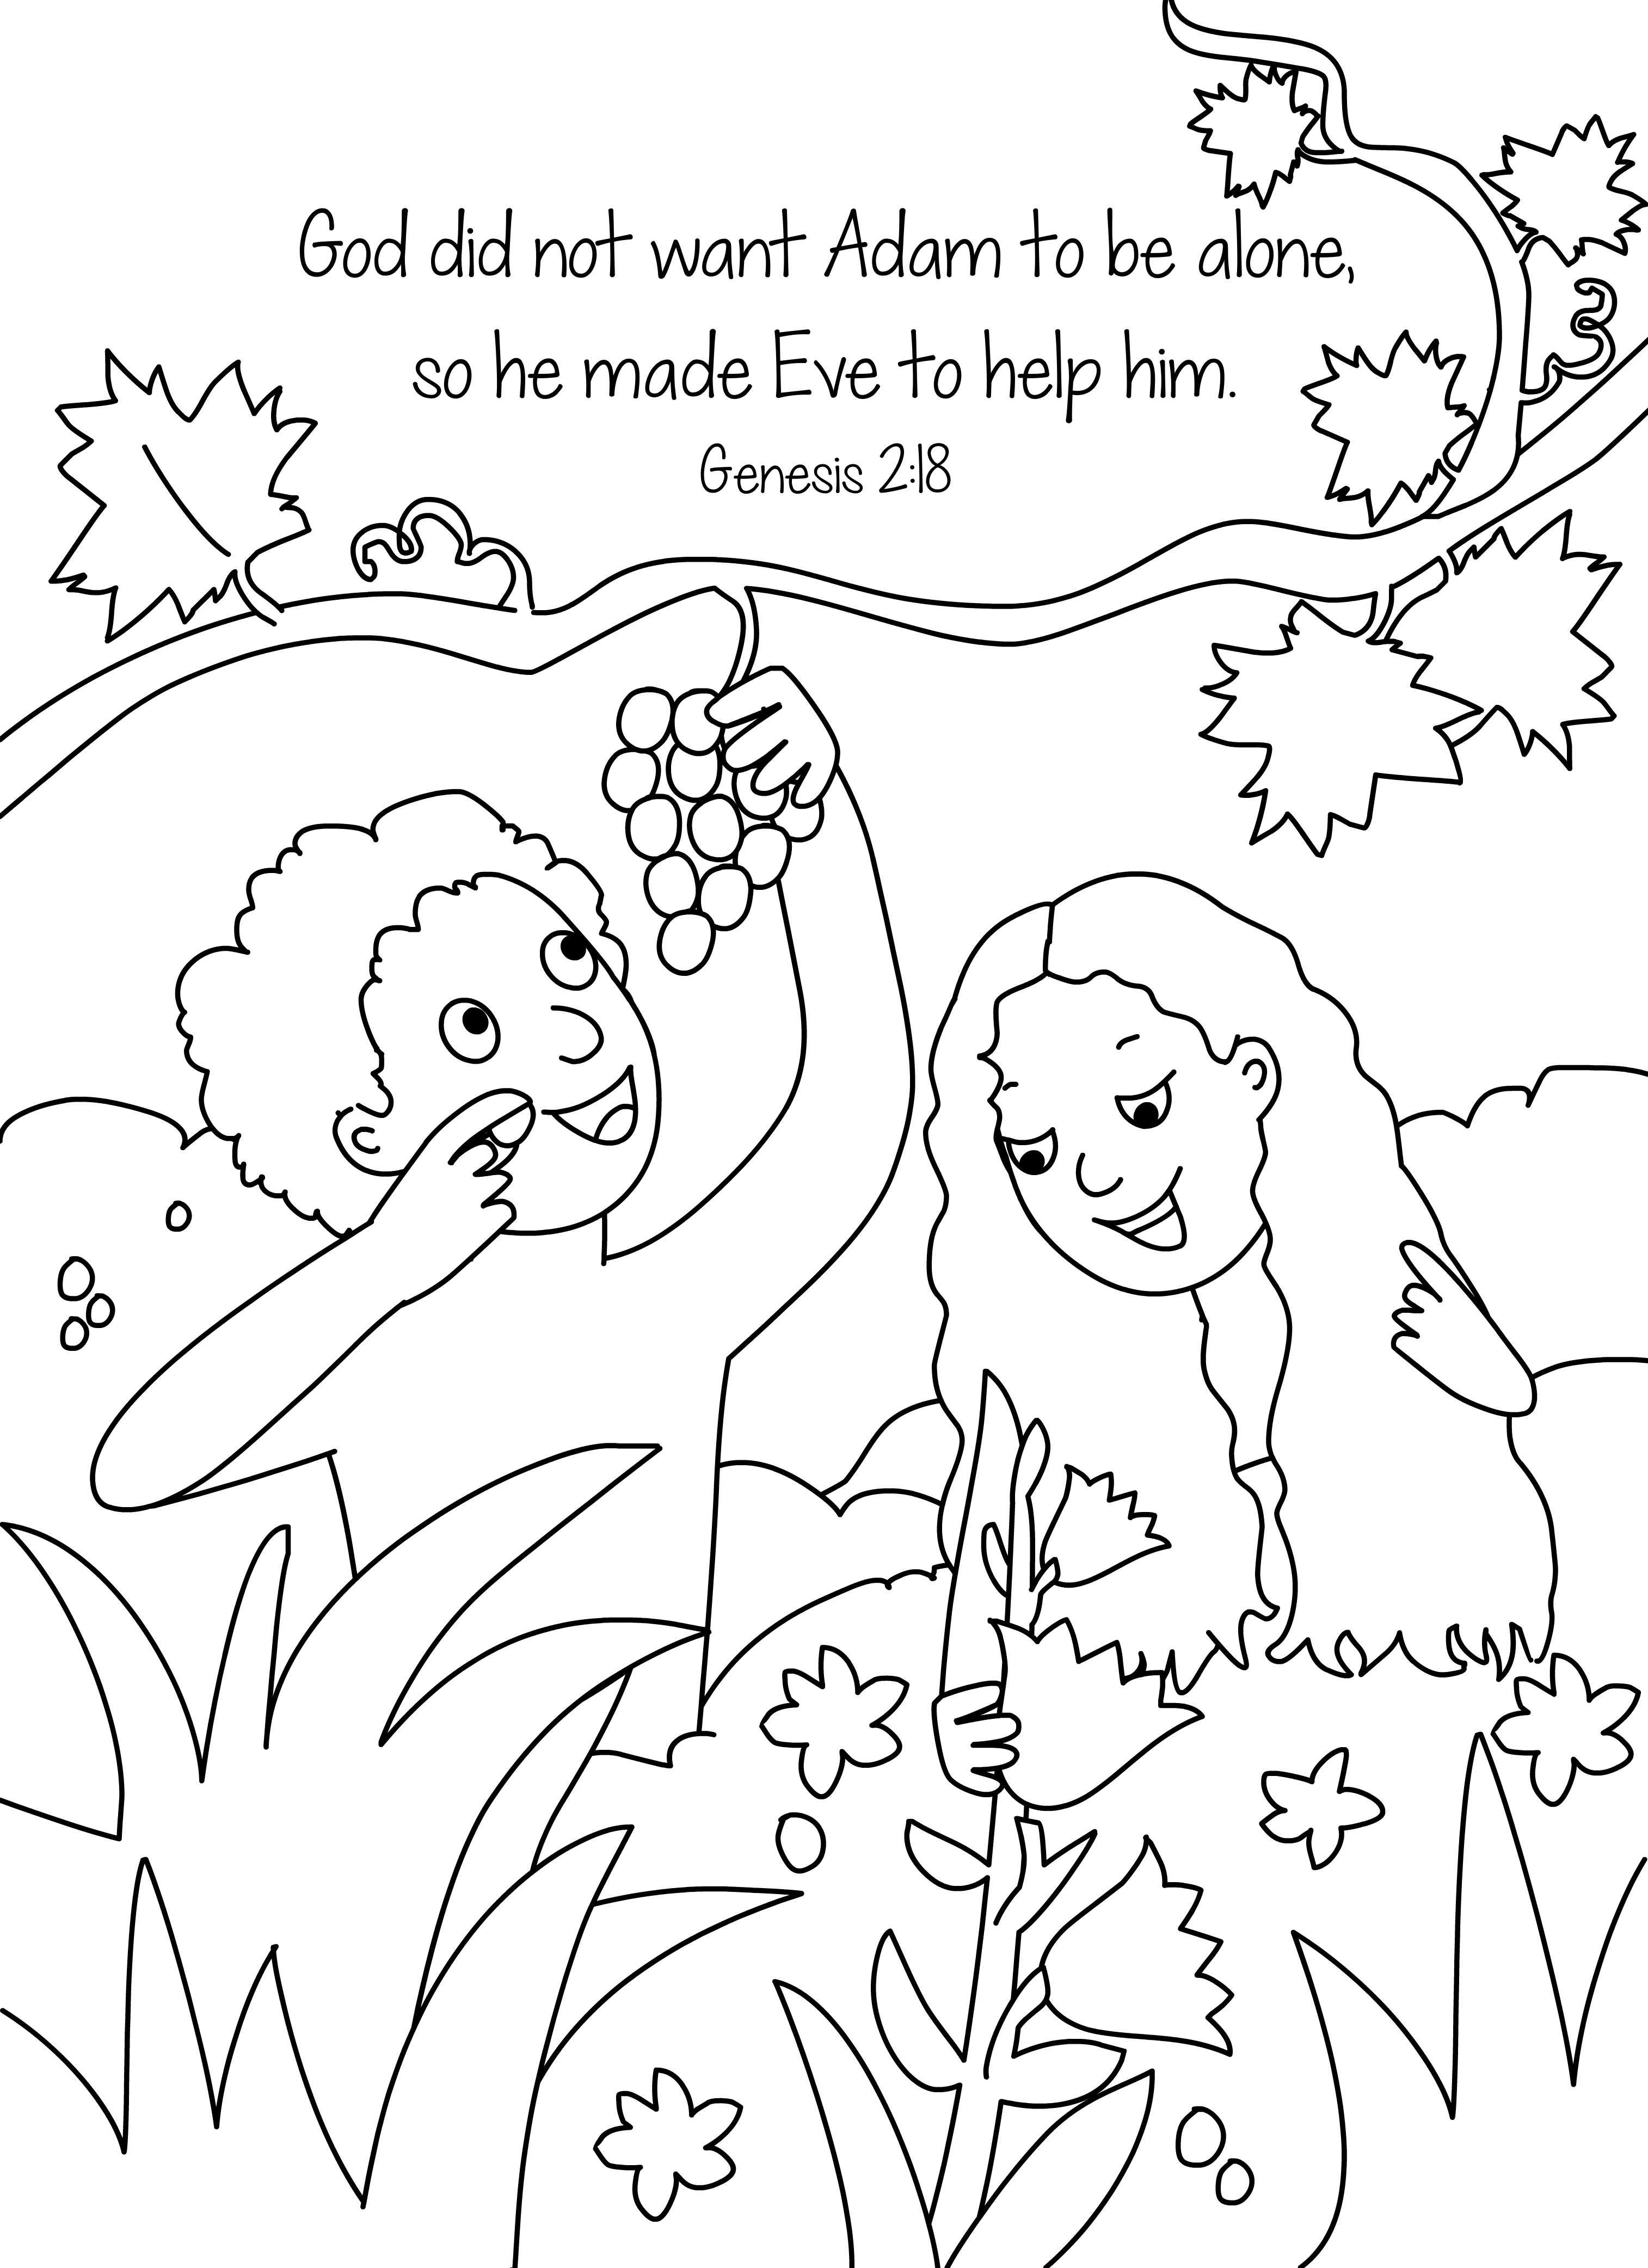 Adam and Eve Coloring Pages Printable  Gallery 11a - Free Download